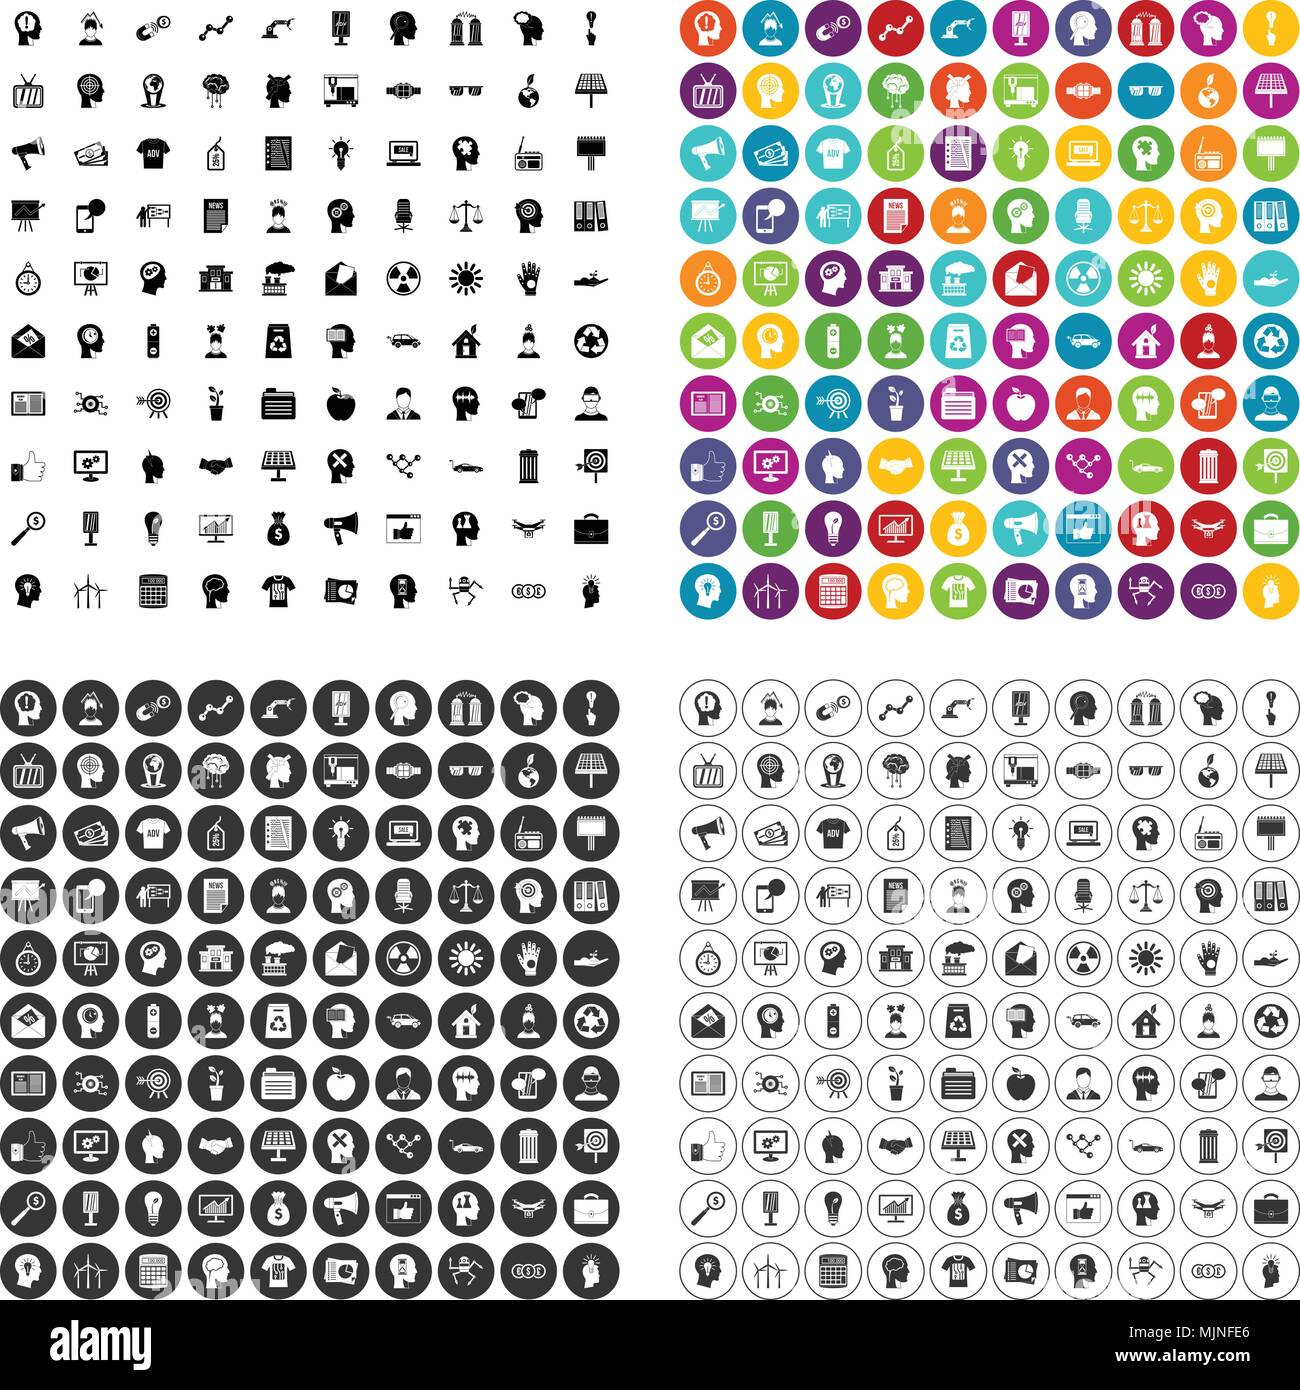 100 idea icons set vector variant - Stock Image